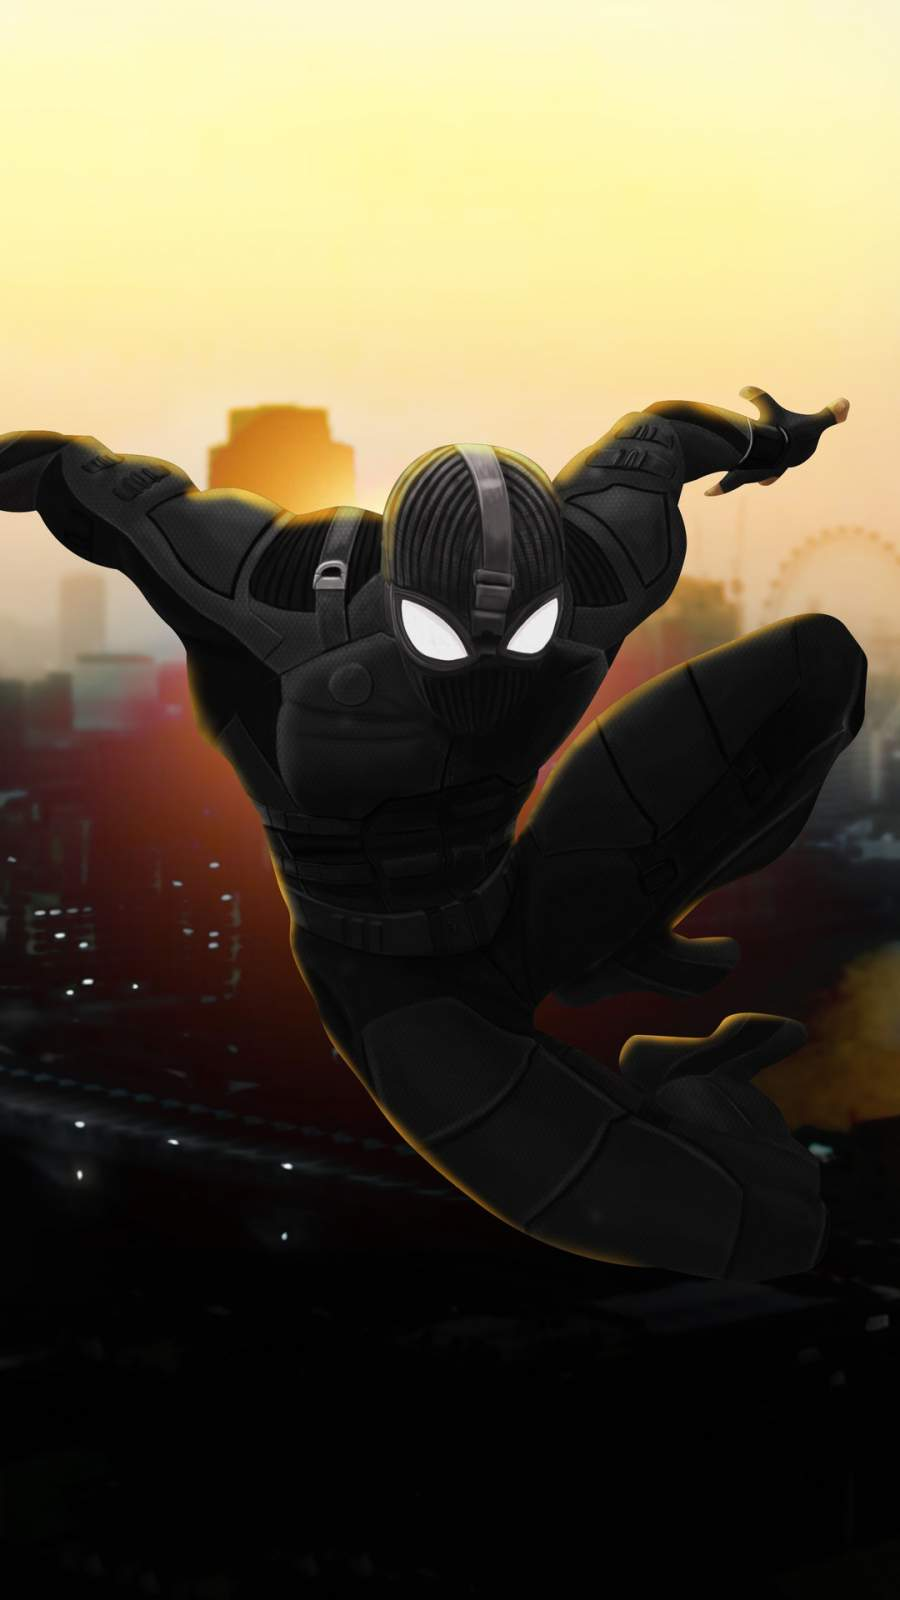 spiderman hd images and photos